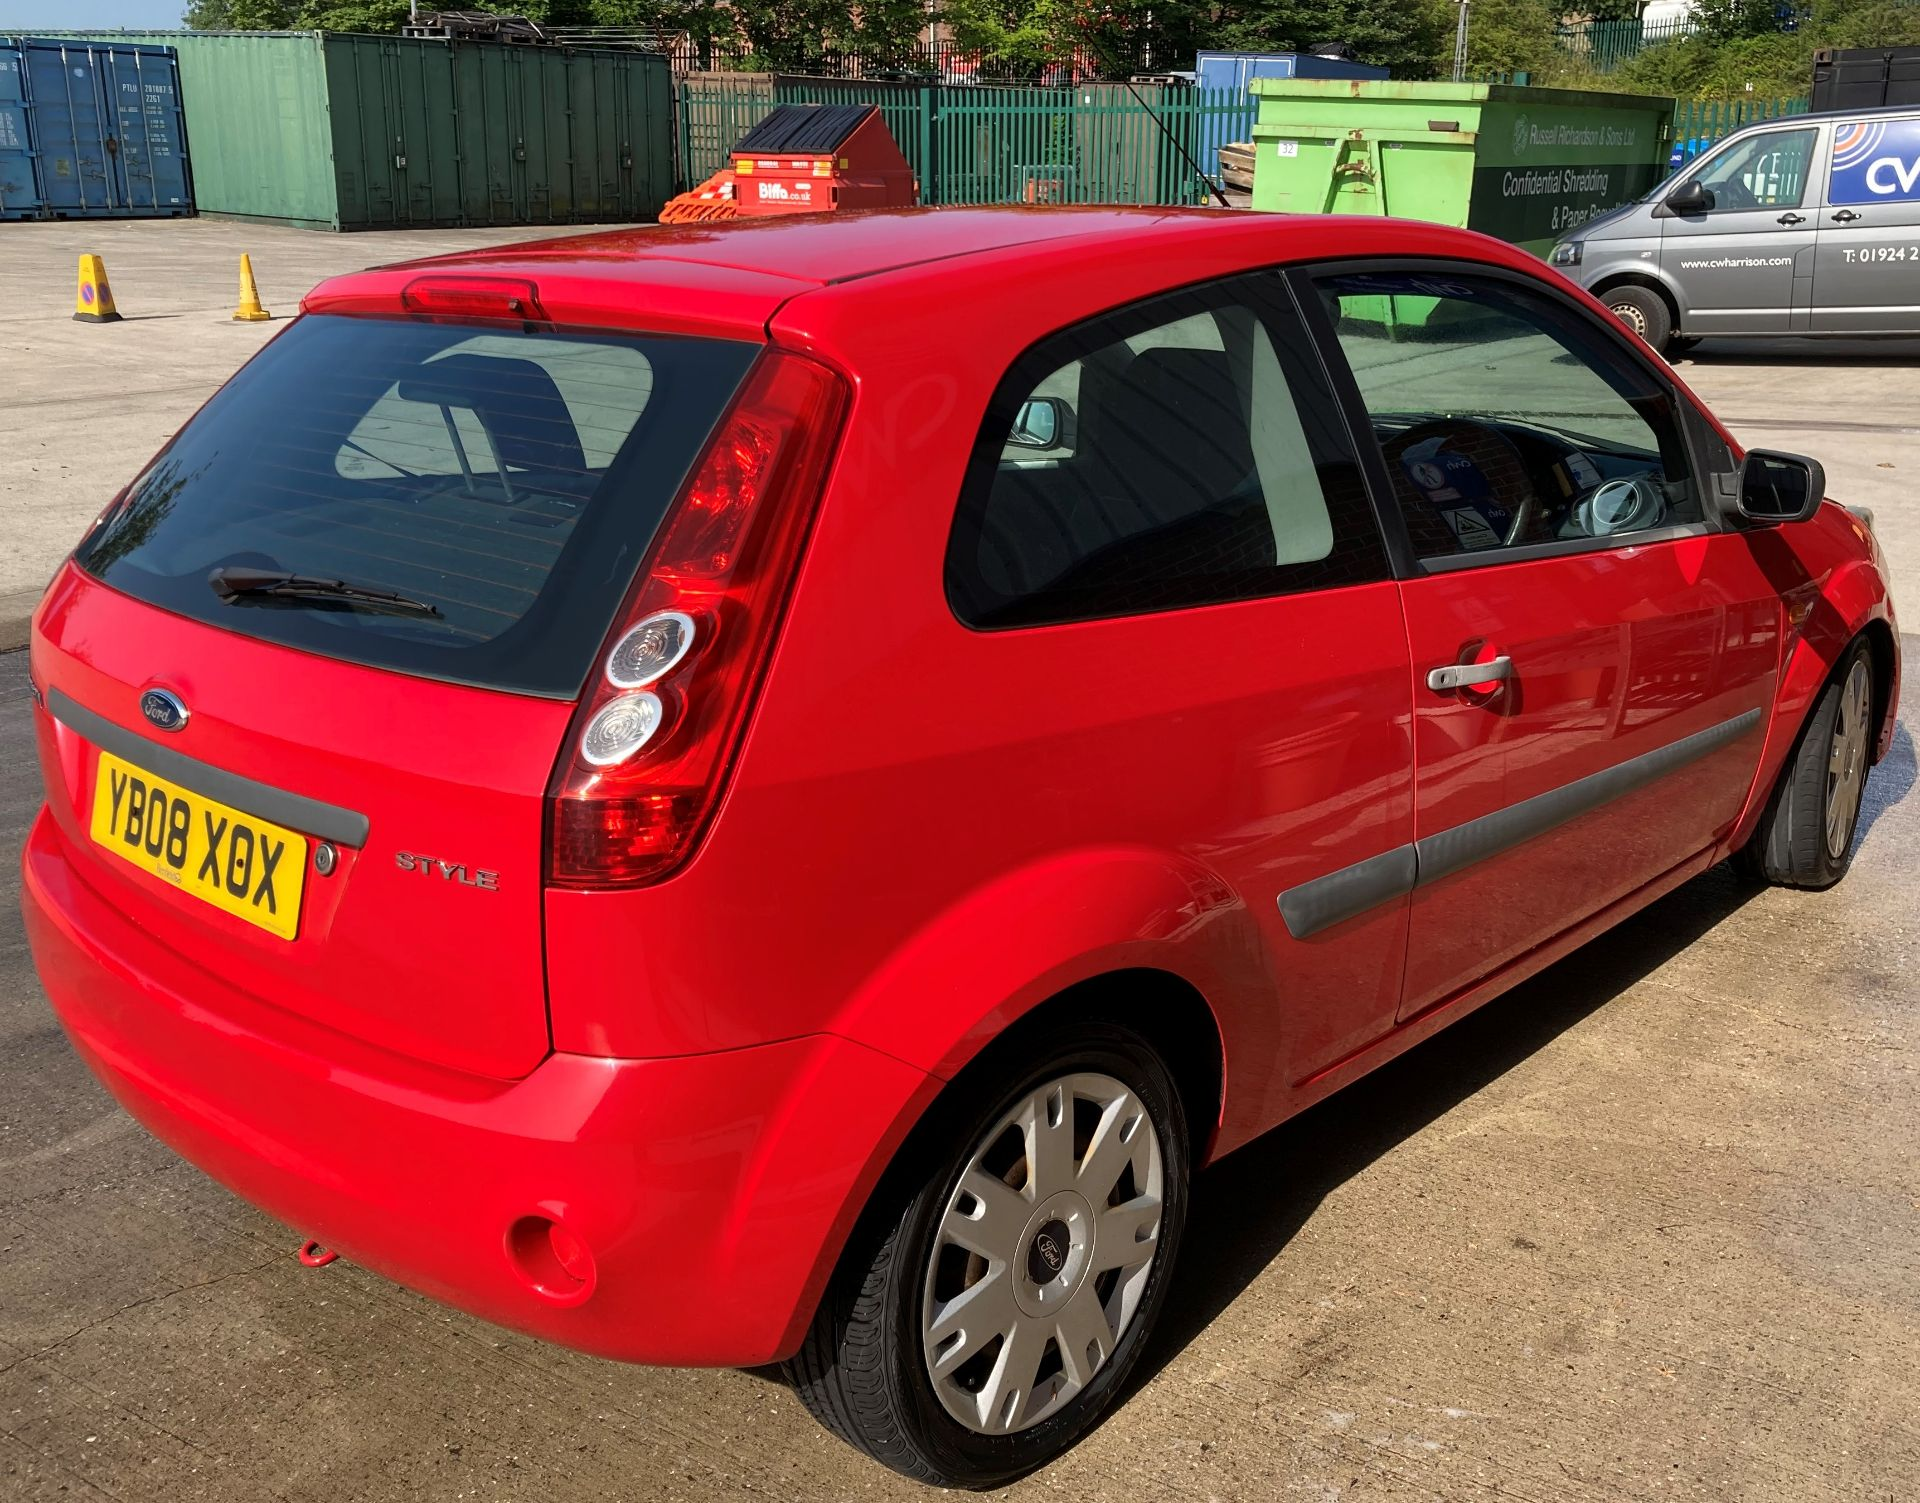 FROM A DECEASED ESTATE FORD FIESTA STYLE 1.2 3 door hatchback - petrol - red Reg No: YB08 XOX Rec. - Image 4 of 10